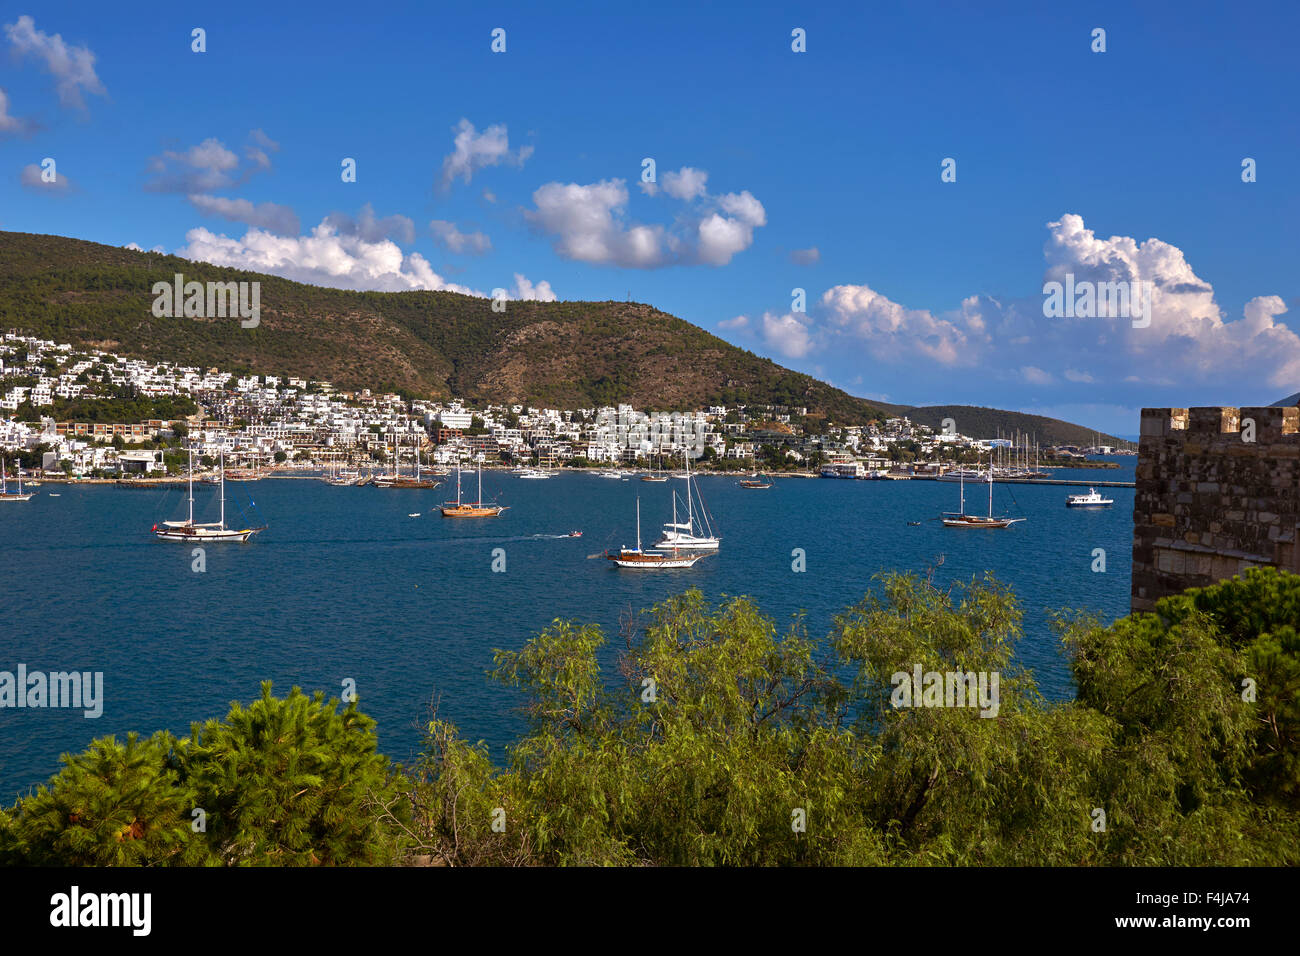 Bodrum East Bay and anchorage at Bodrum town, Mugla Province, Turkey. - Stock Image